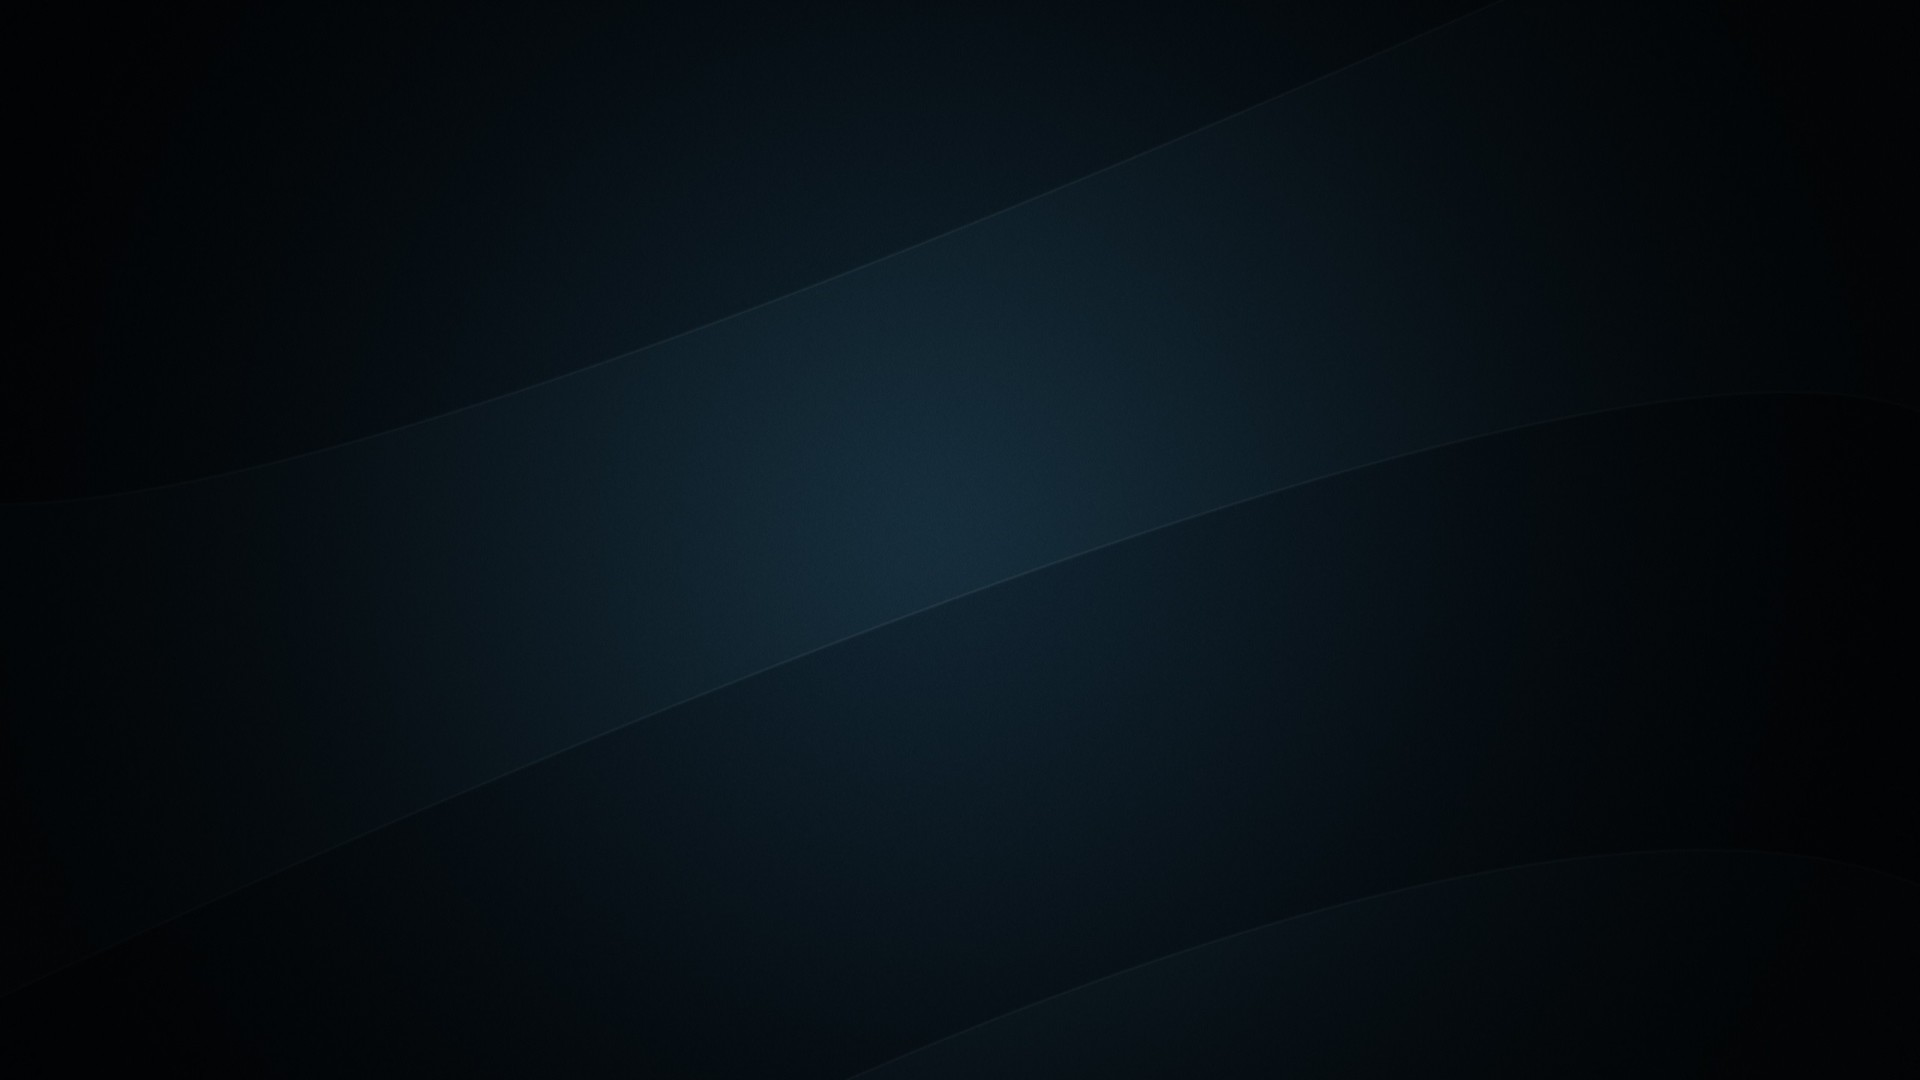 Dark Blue Background Images Wallpapertag: 4K Black Wallpaper (57+ Images